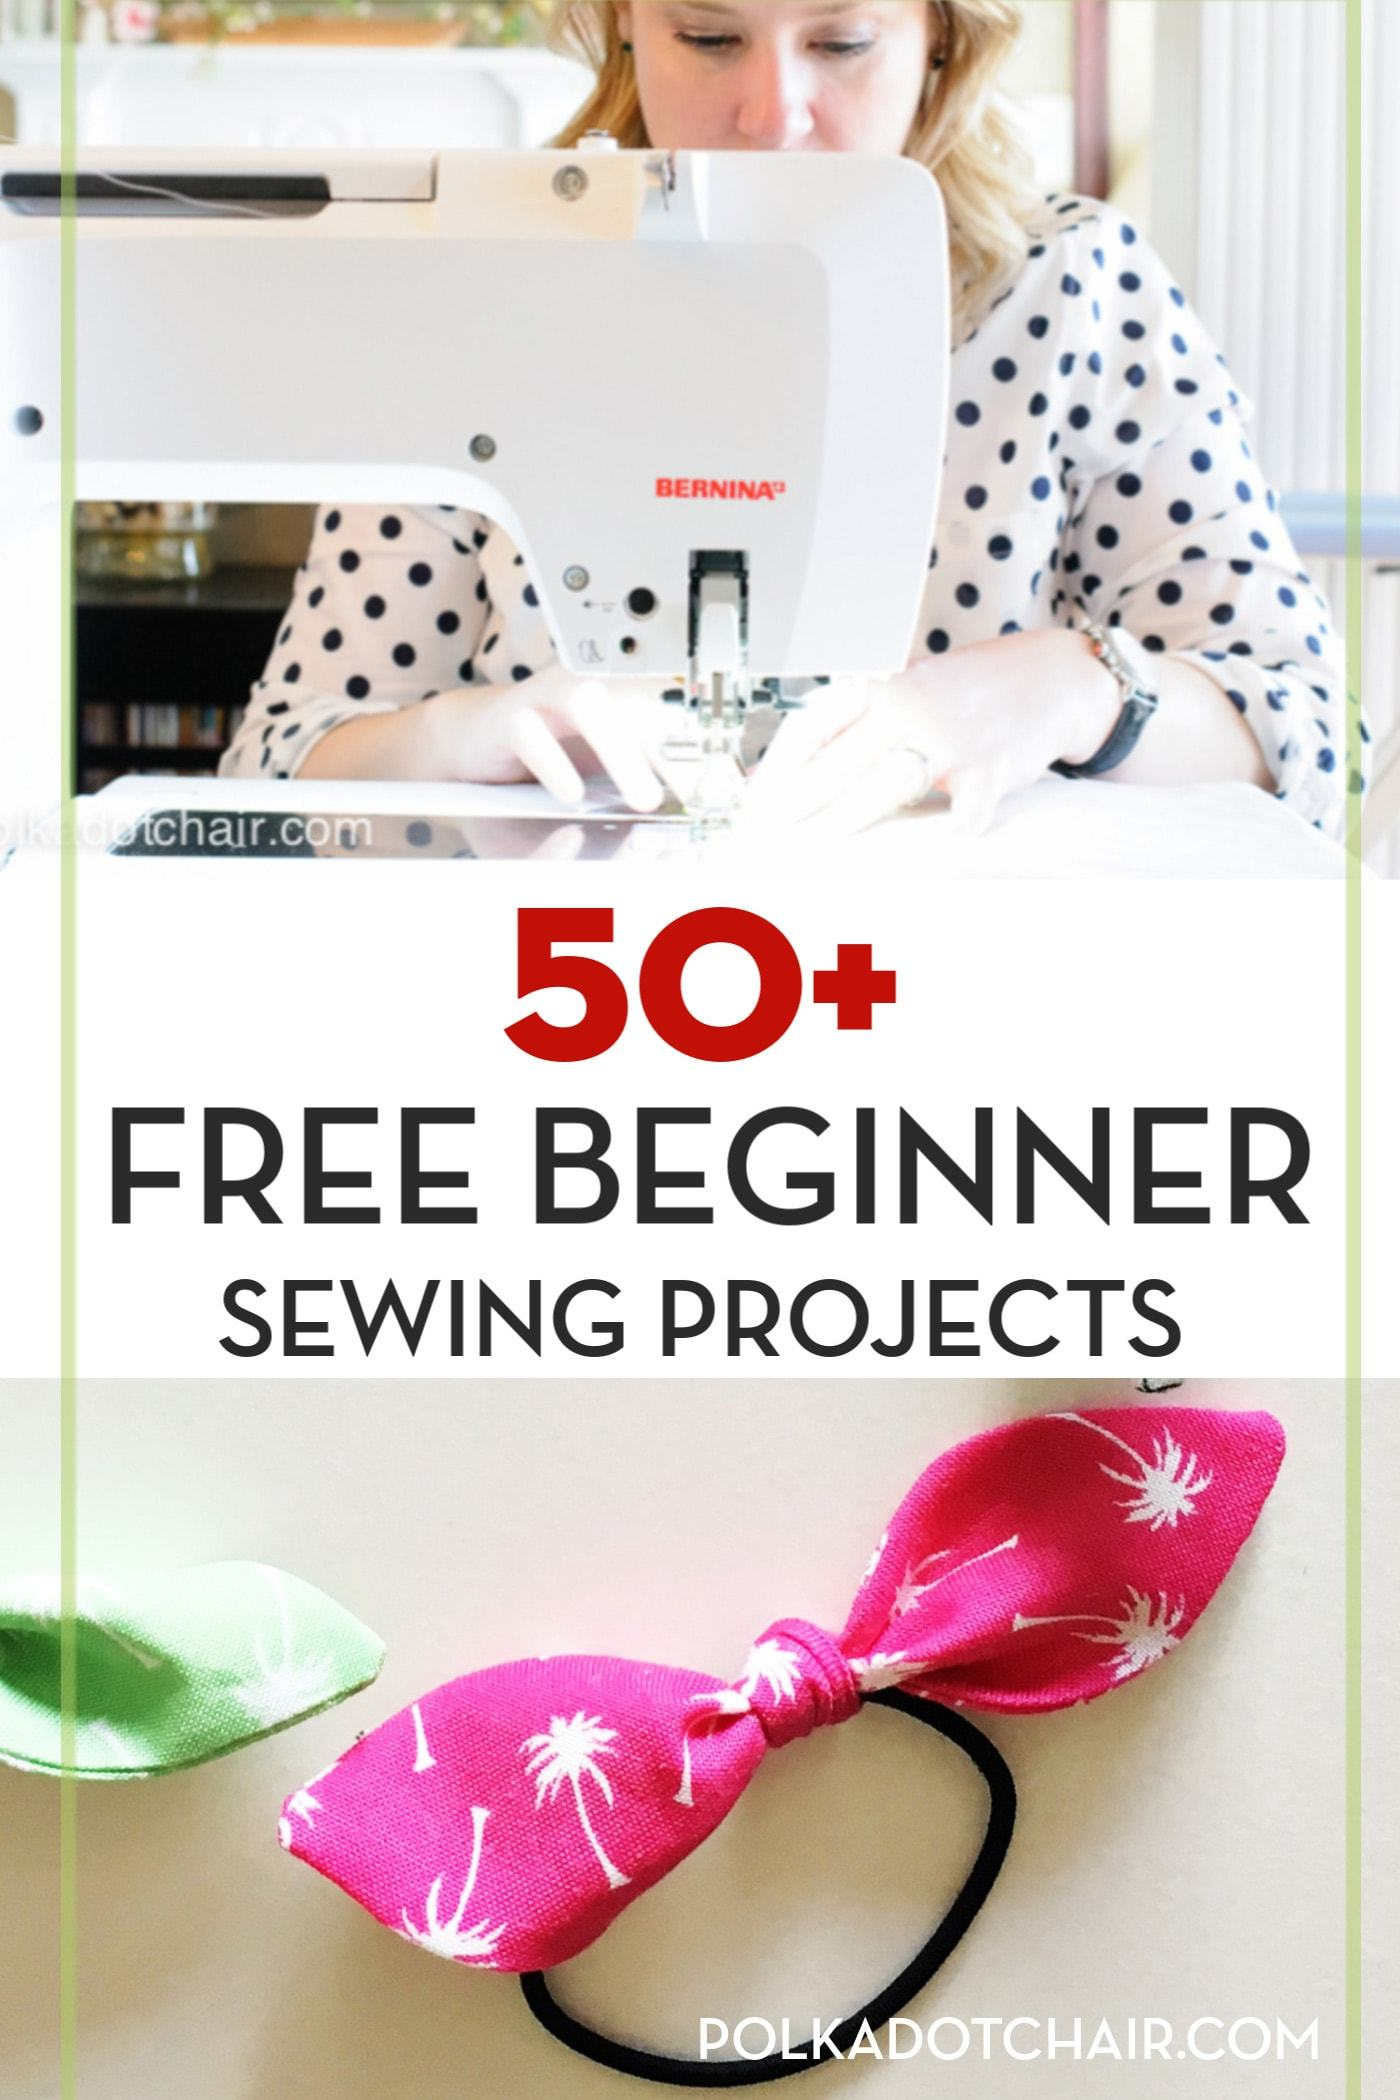 More than 50 Fun & Free Beginner Sewing Projects